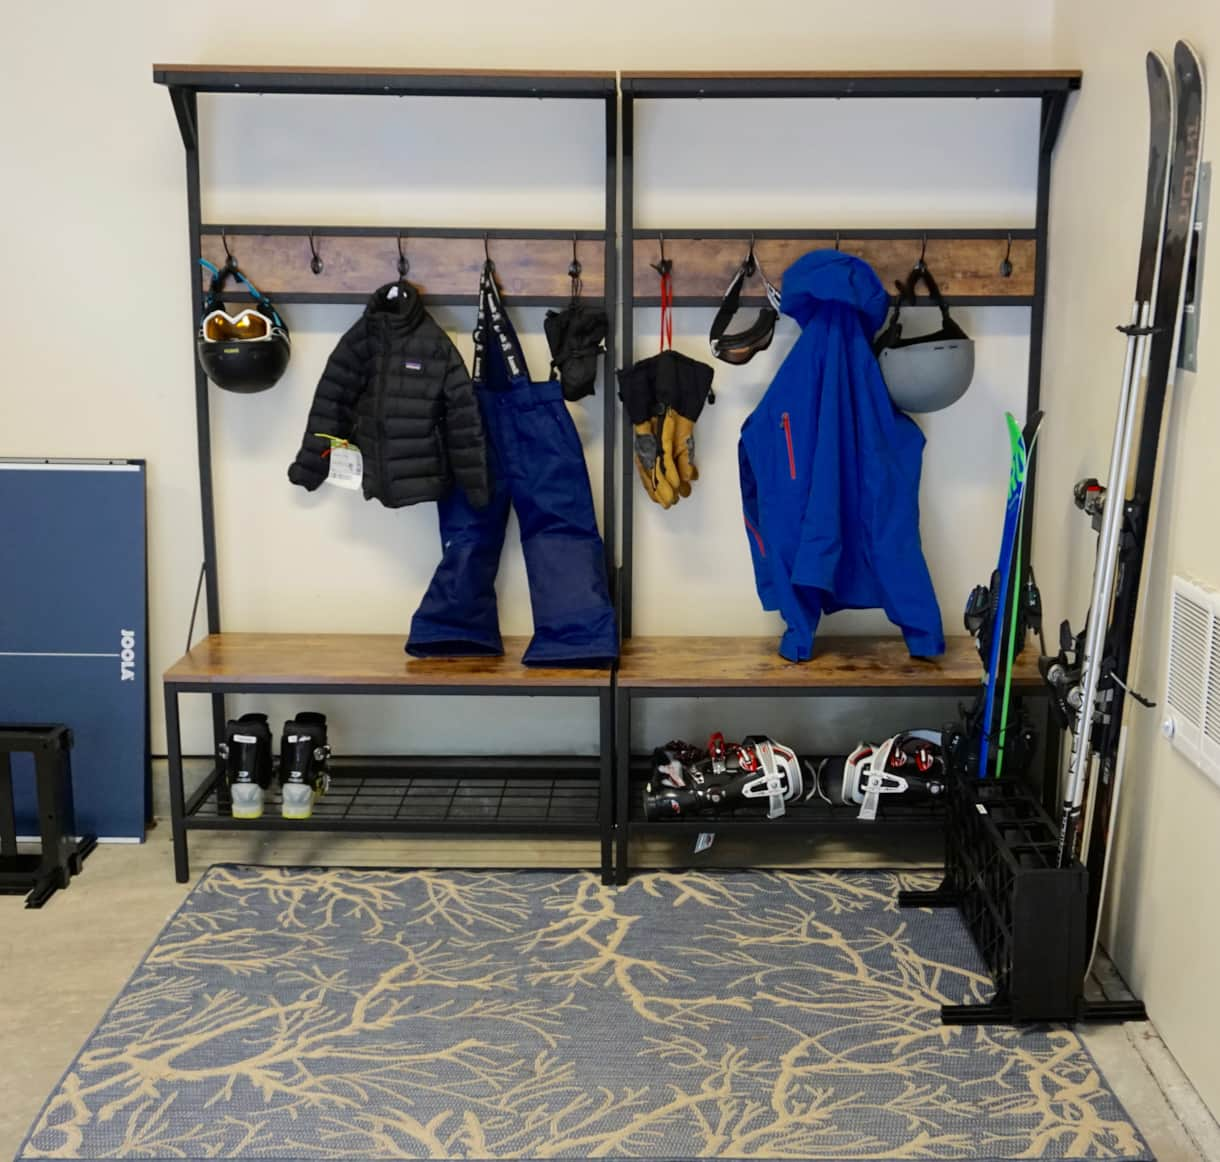 heated garage - perfect for ski & board gear